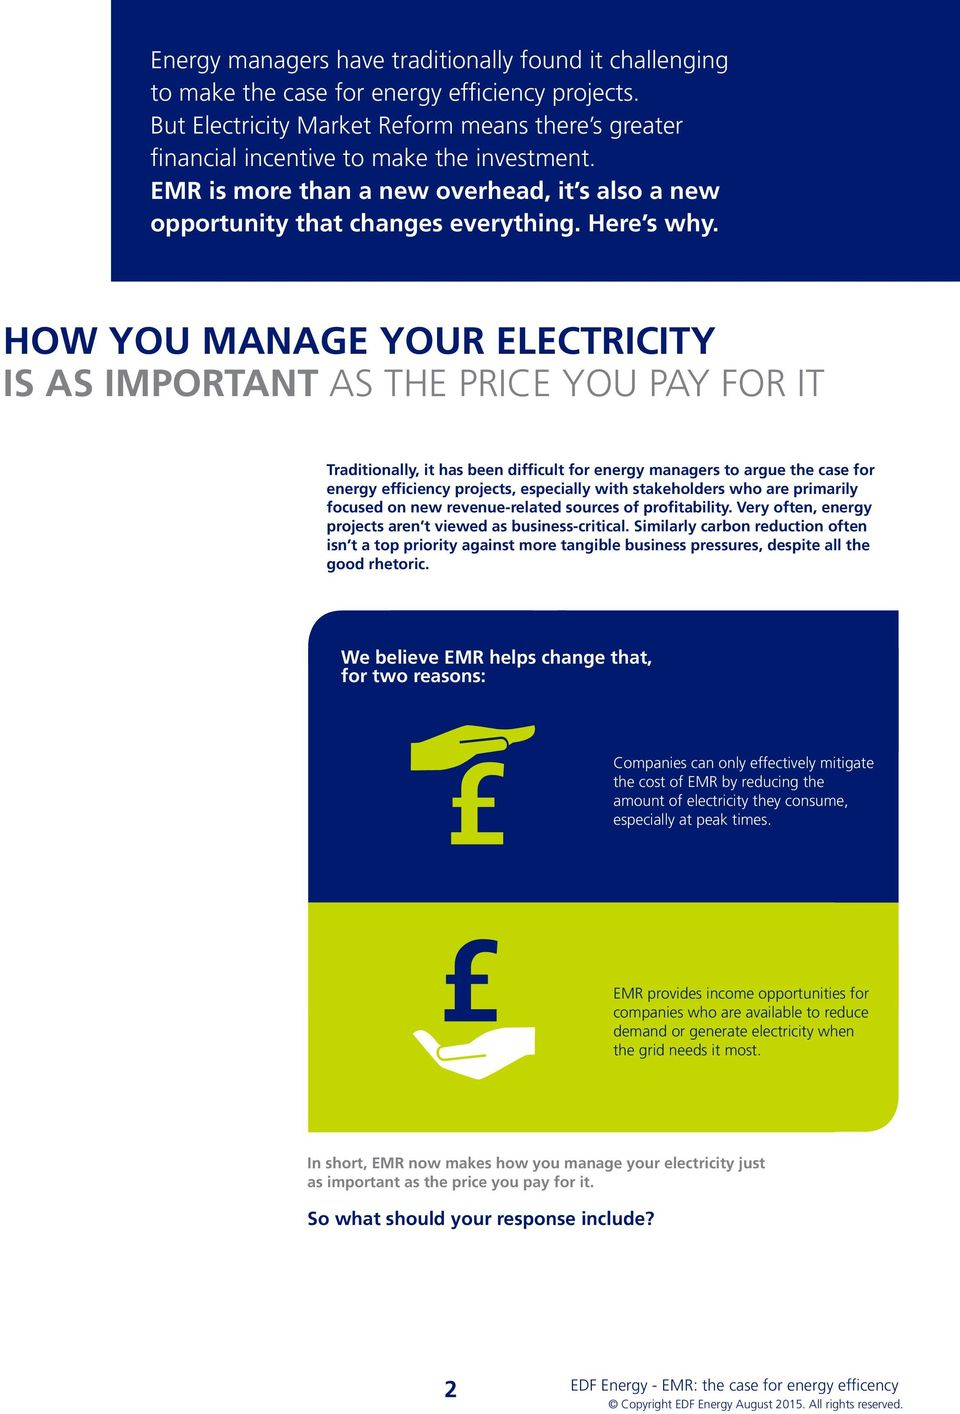 HOW YOU MANAGE YOUR ELECTRICITY IS AS IMPORTANT AS THE PRICE YOU PAY FOR IT Traditionally, it has been difficult for energy managers to argue the case for energy efficiency projects, especially with